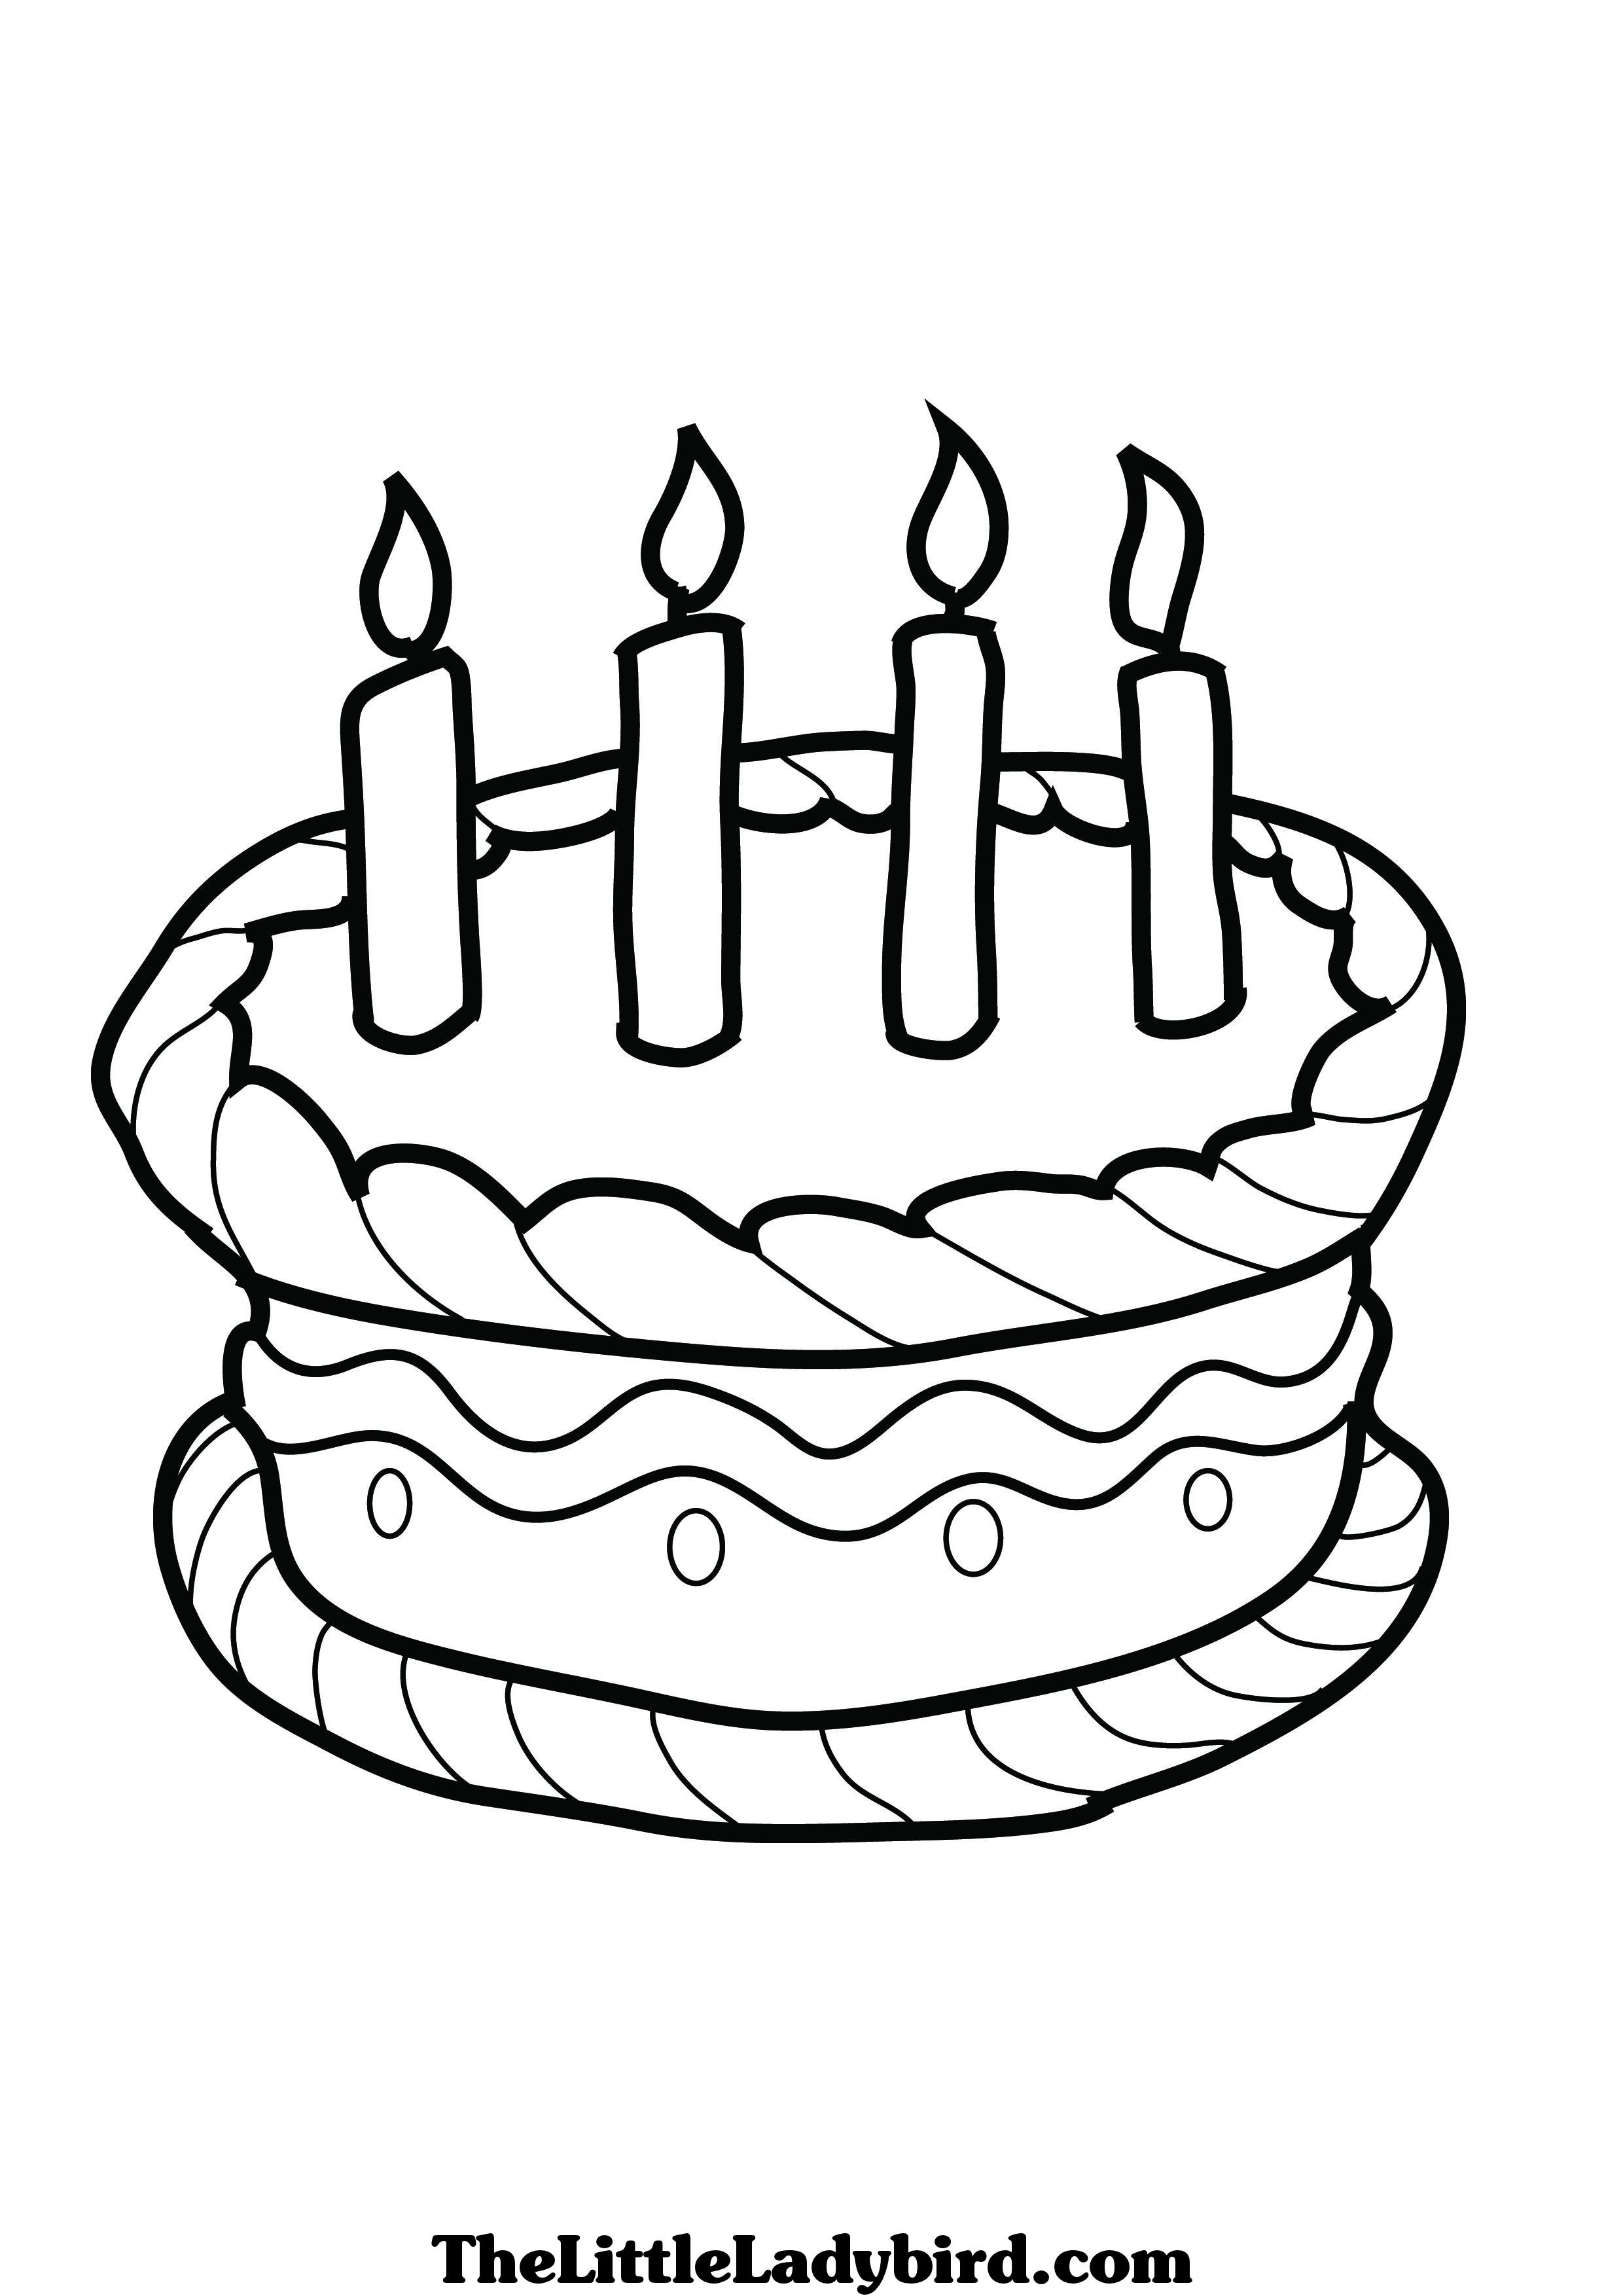 2480x3508 Cake Coloring Page